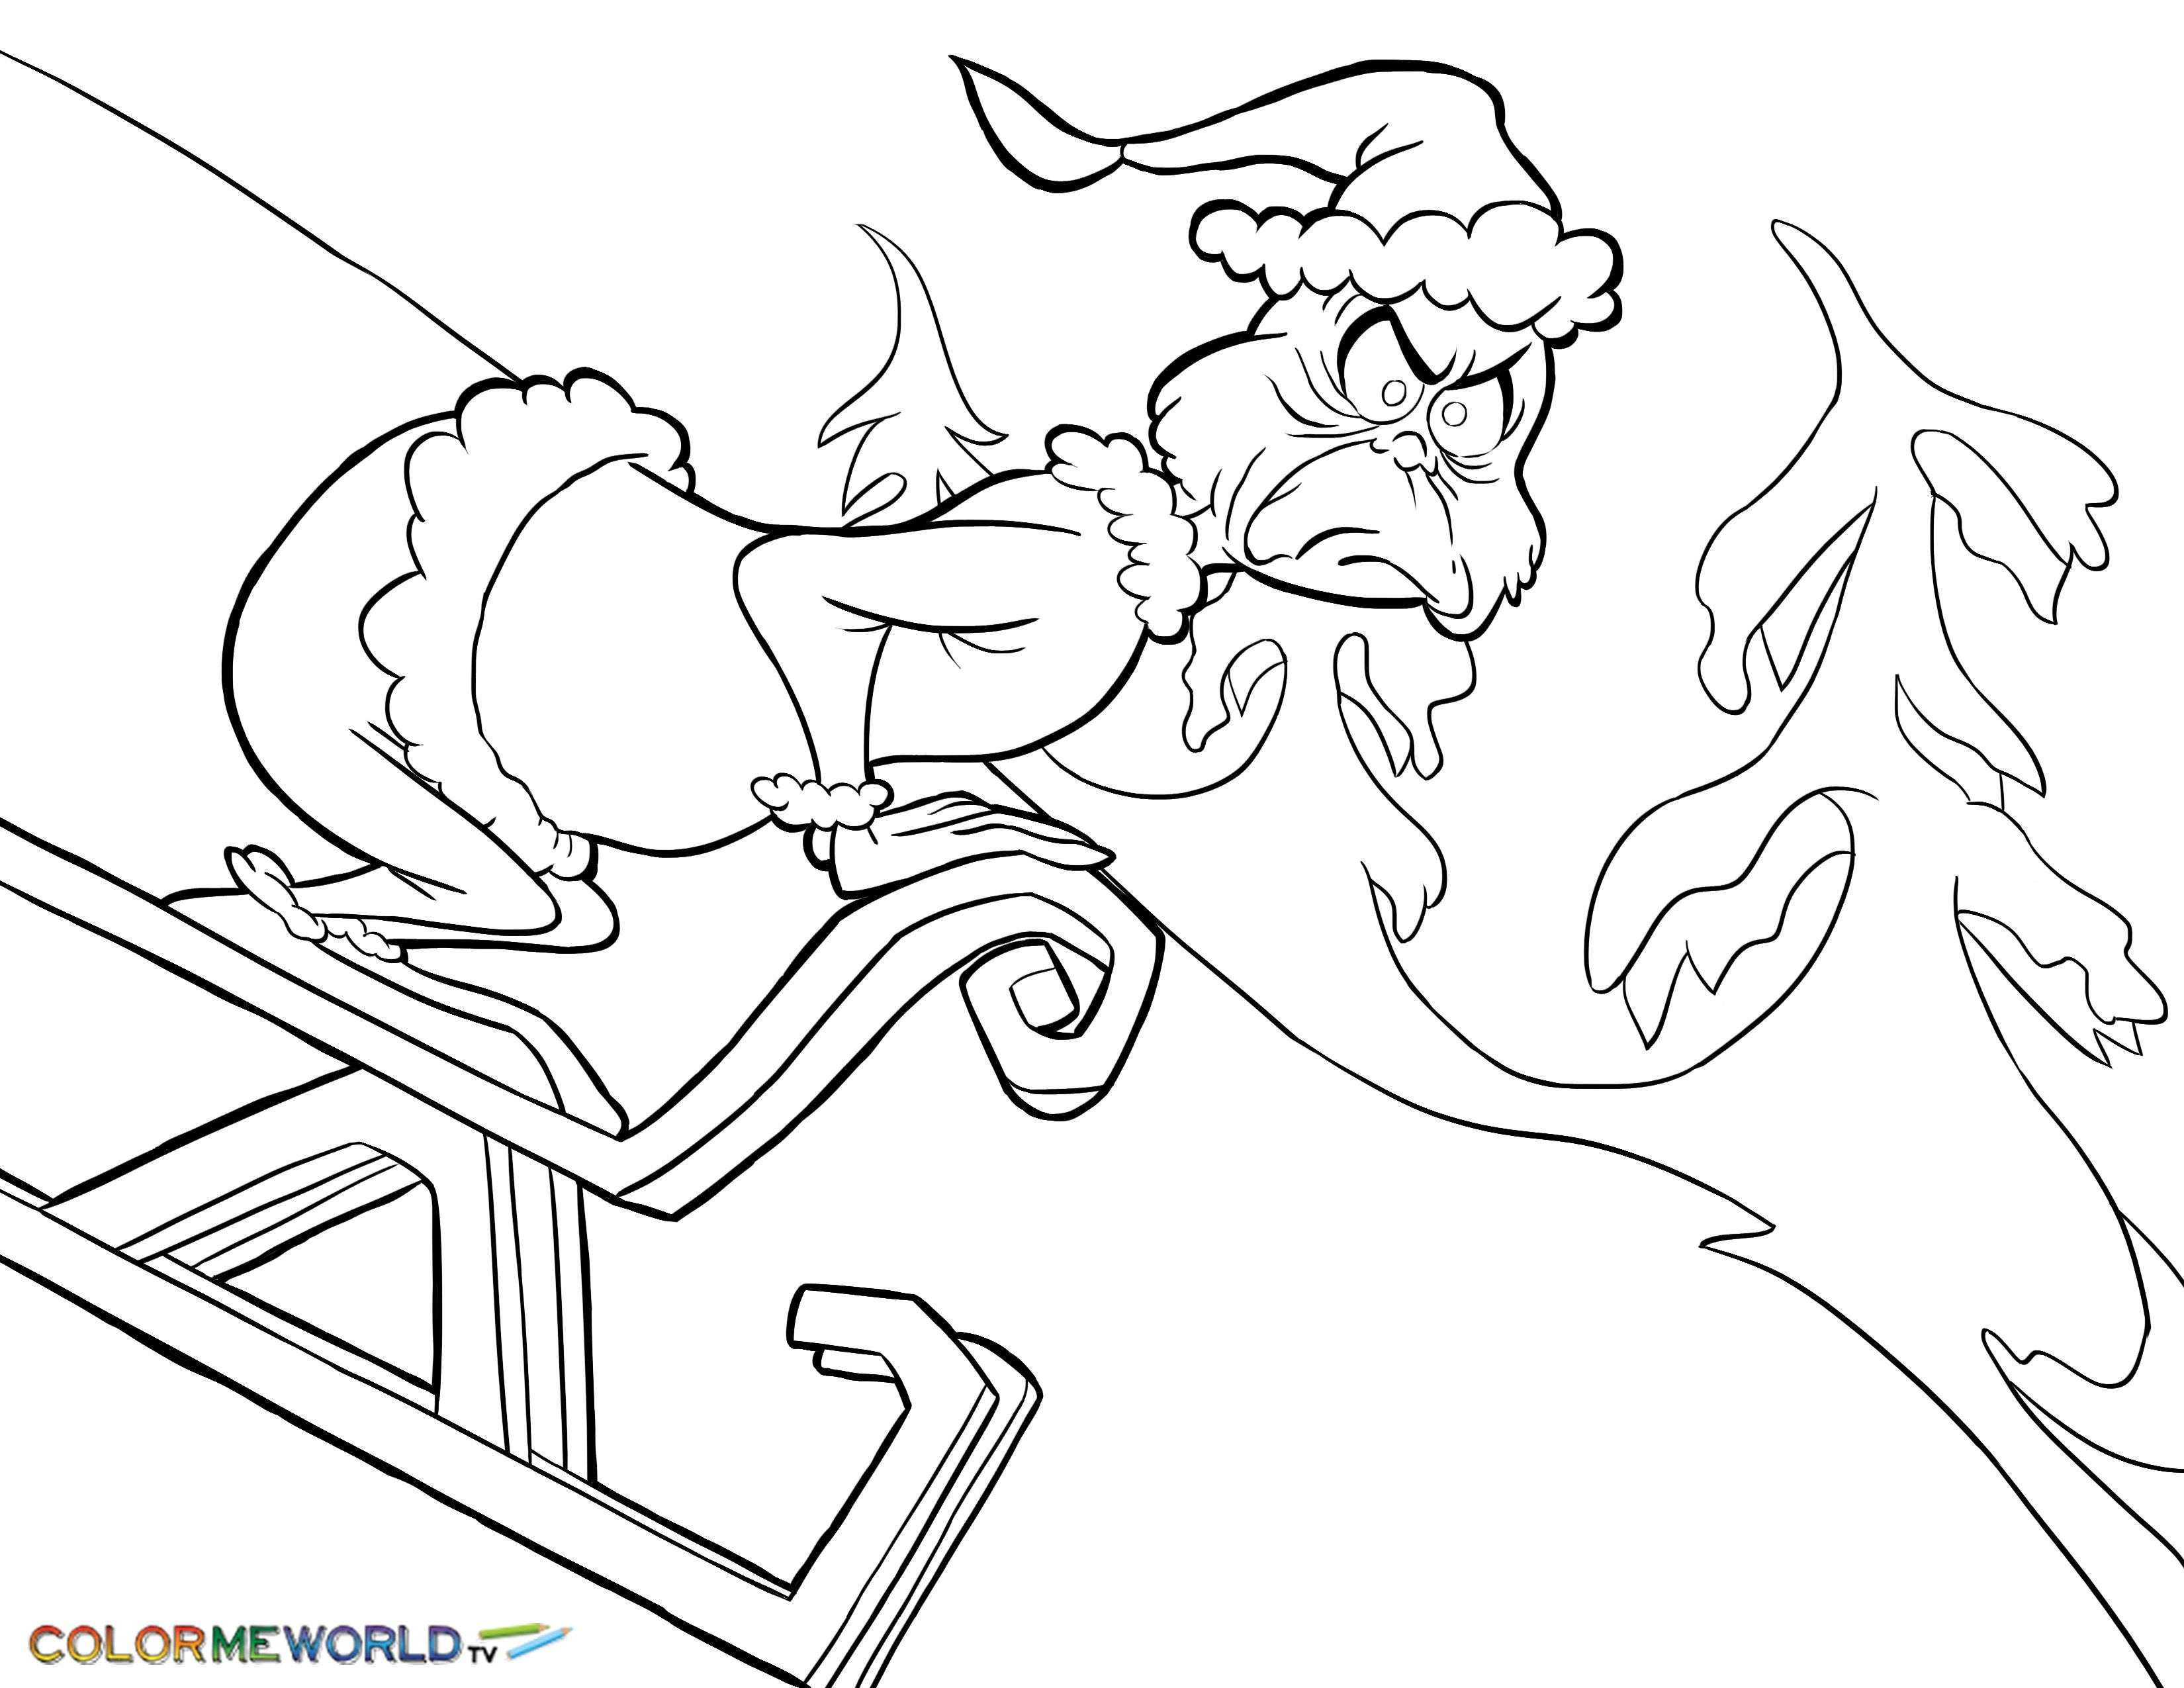 Ten on the sled coloring pages